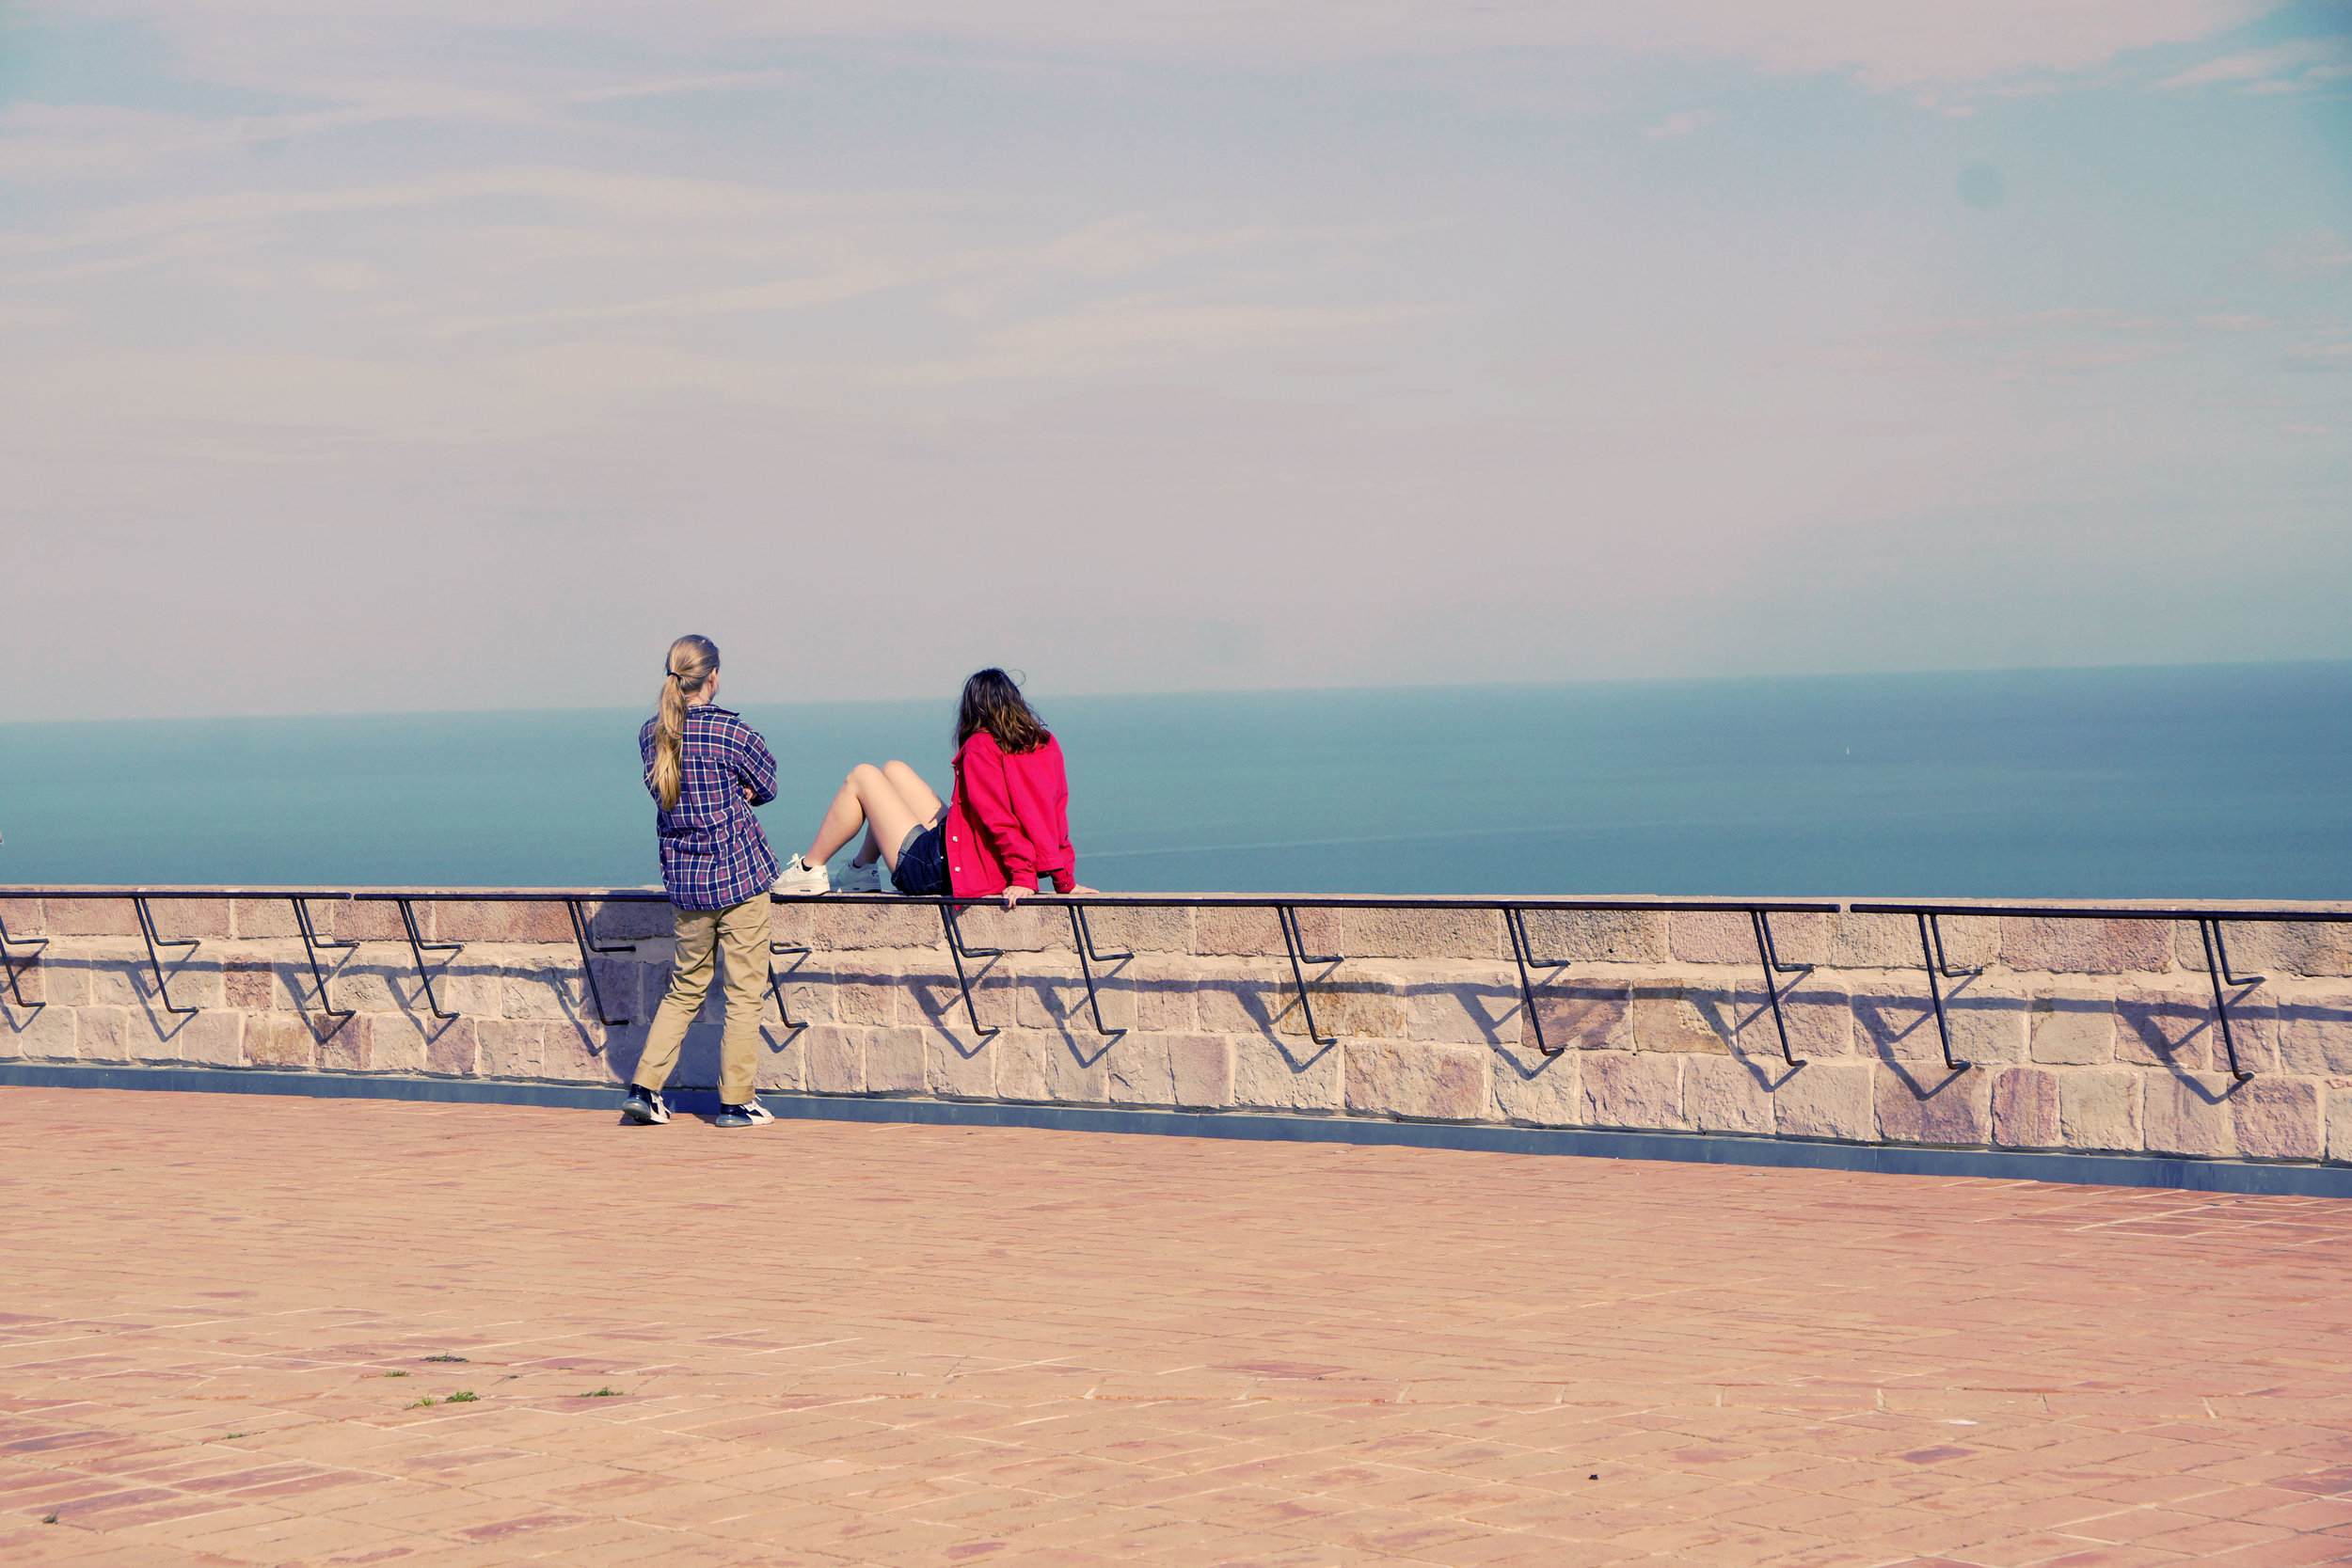 Soph Bonde/Argot Publications Inc   [Image Description: Two people over look a ocean vista, they both have long hair, the one to the left sits on a stone wall and stares out over the water, the person to the right has their arms crossed over their chest]